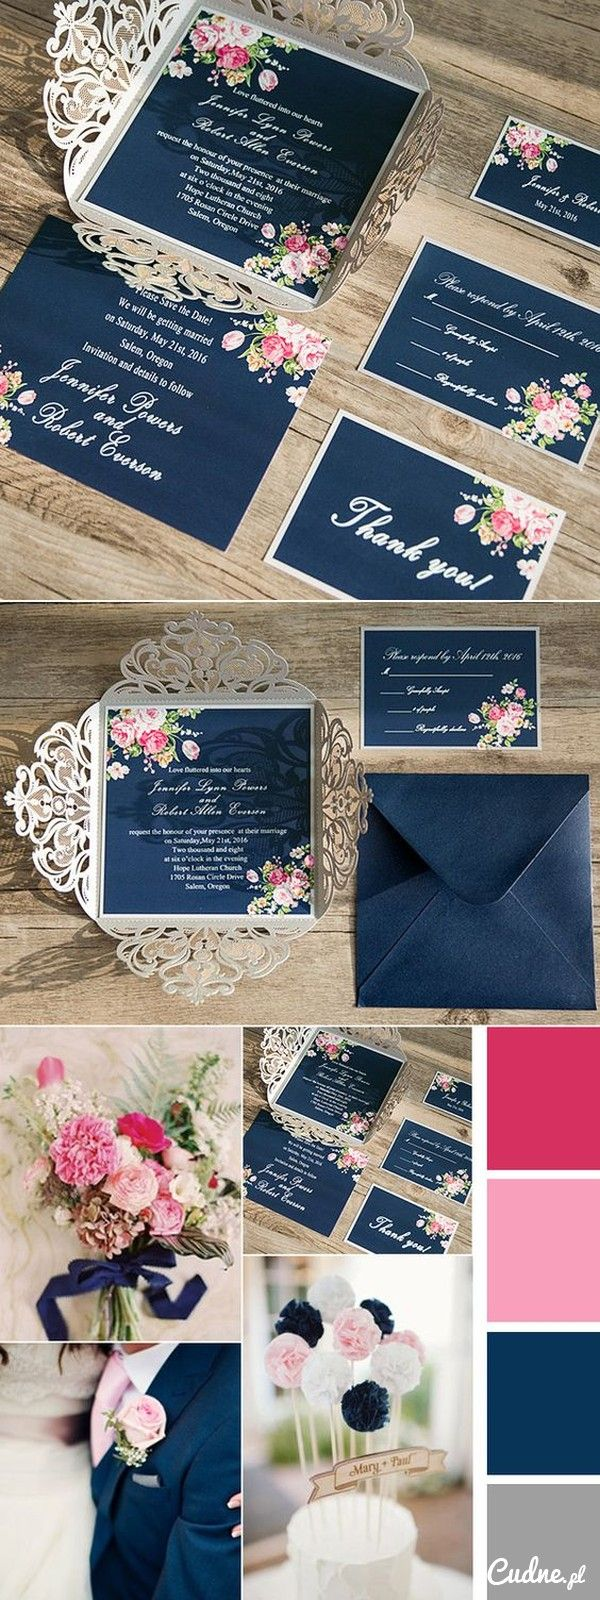 comic book inspired wedding invitations%0A Shabby Chic Floral Navy Blue and Pink Wedding Colors Inspired Laser Cut Wedding  Invitations  elegantwinvites   OFF CODE  mod